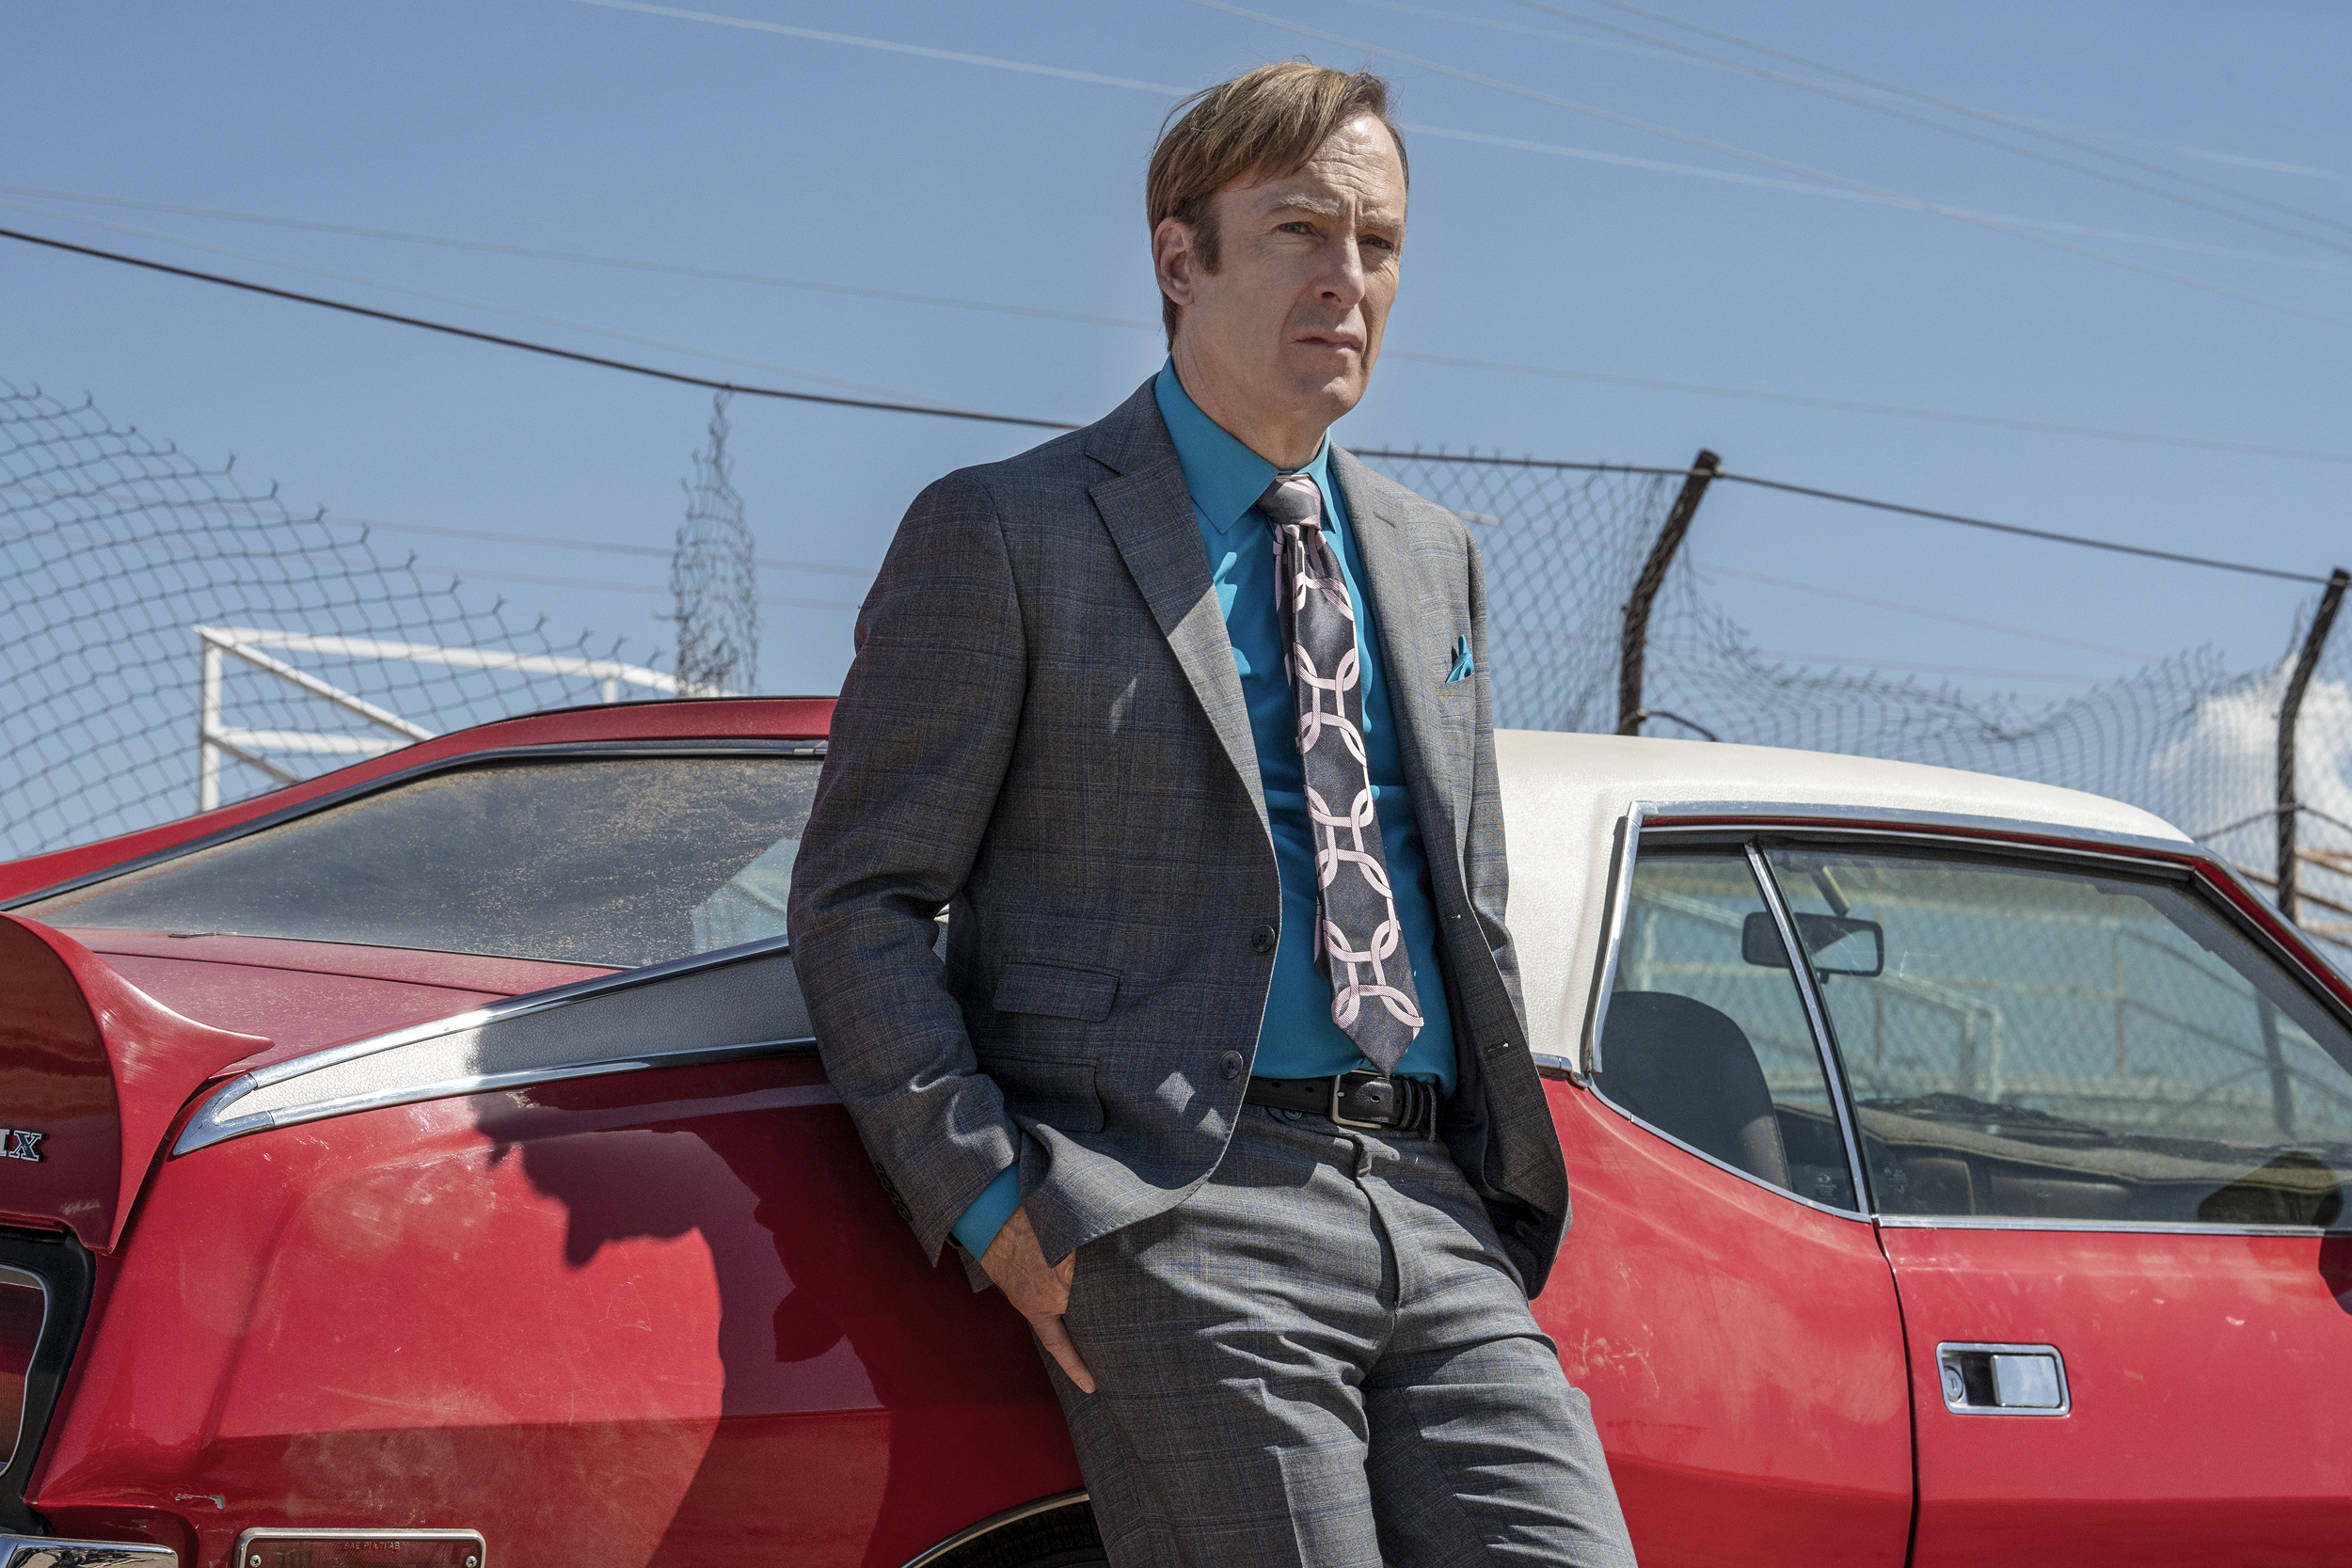 Bob Odenkirk says he had a 'small heart attack' when he collapsed on 'Better Call Saul' set